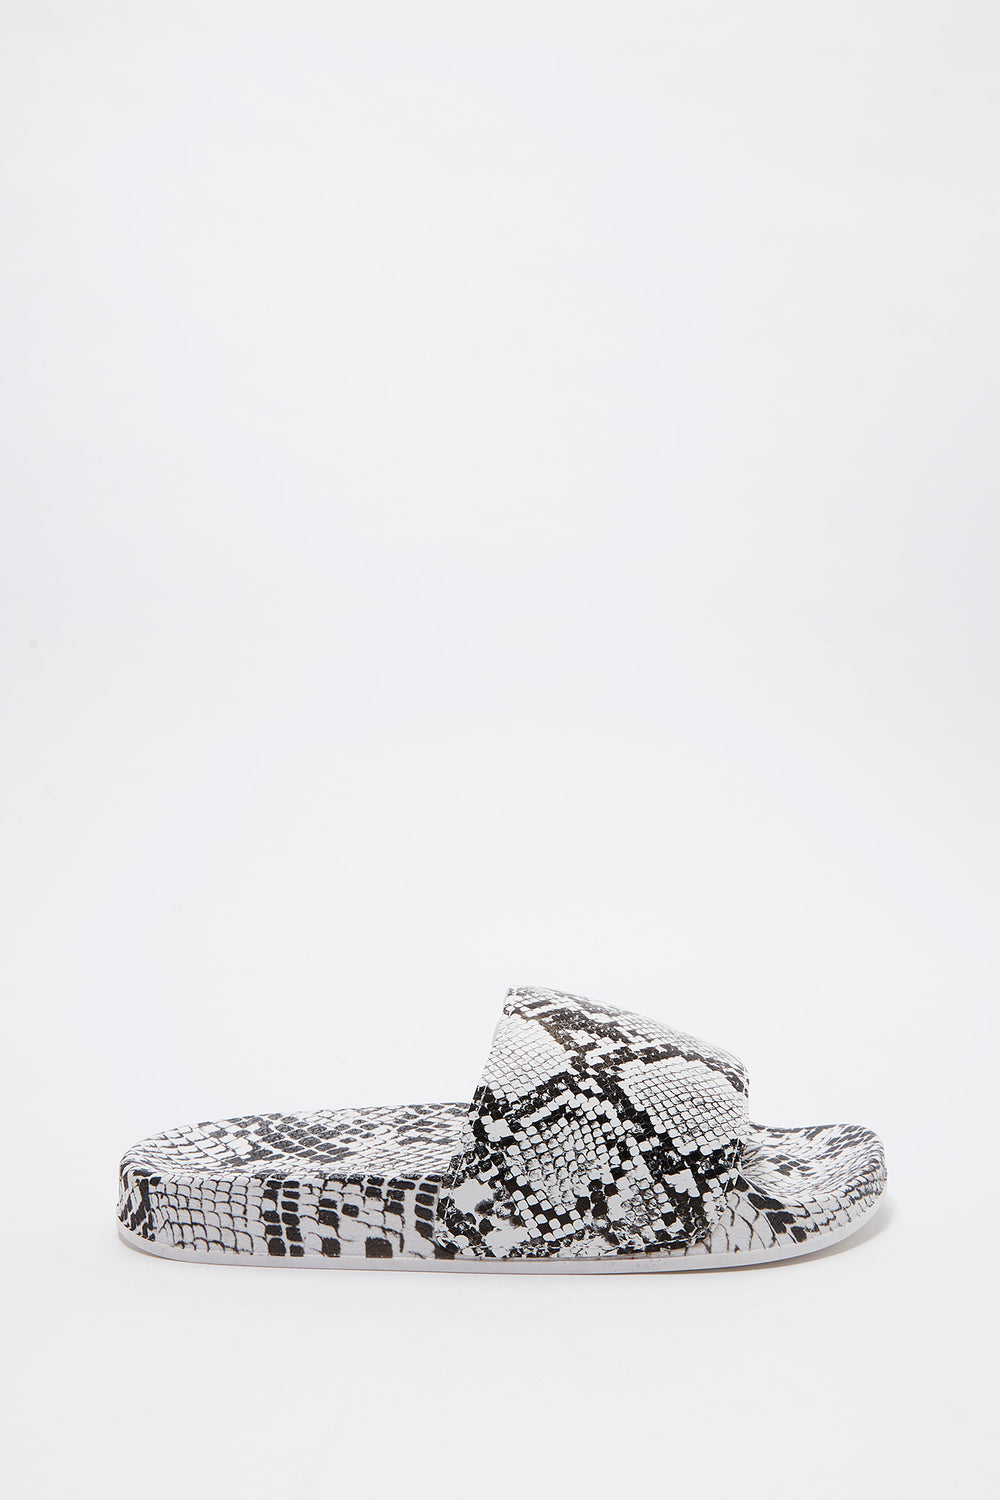 Snake Skin Slide Black with White